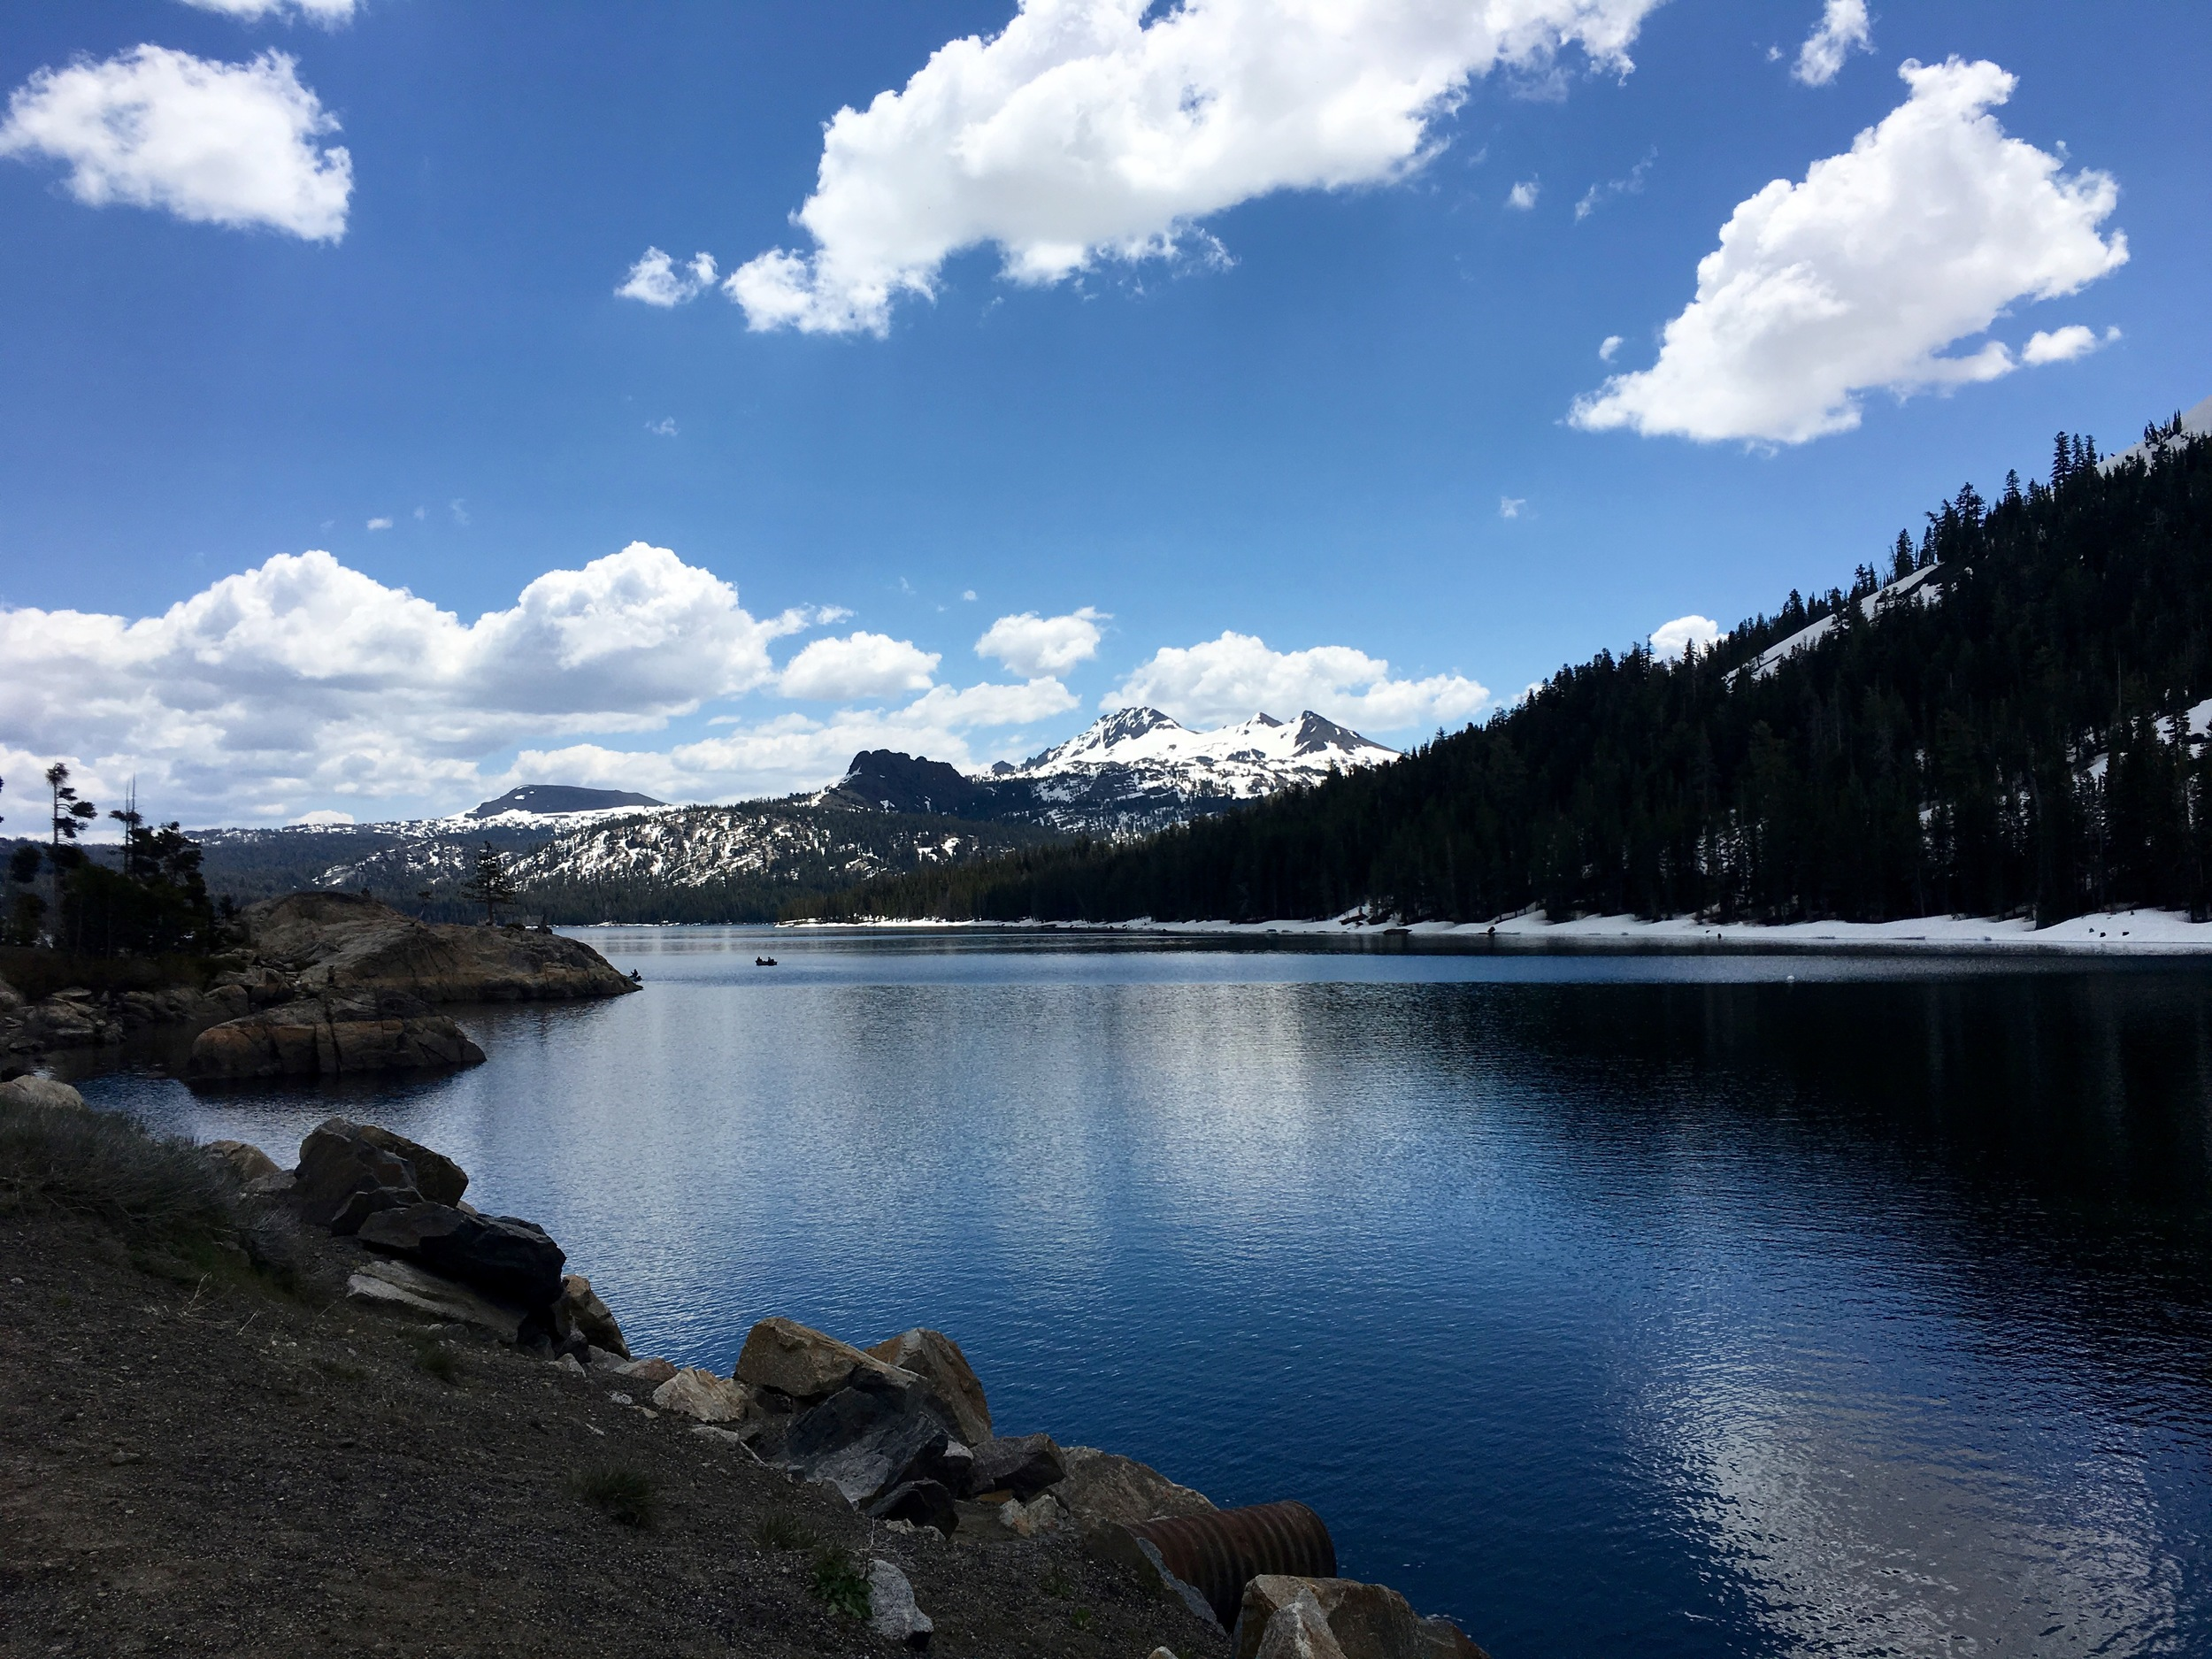 Near Carson Pass, the route I took over the Sierra.